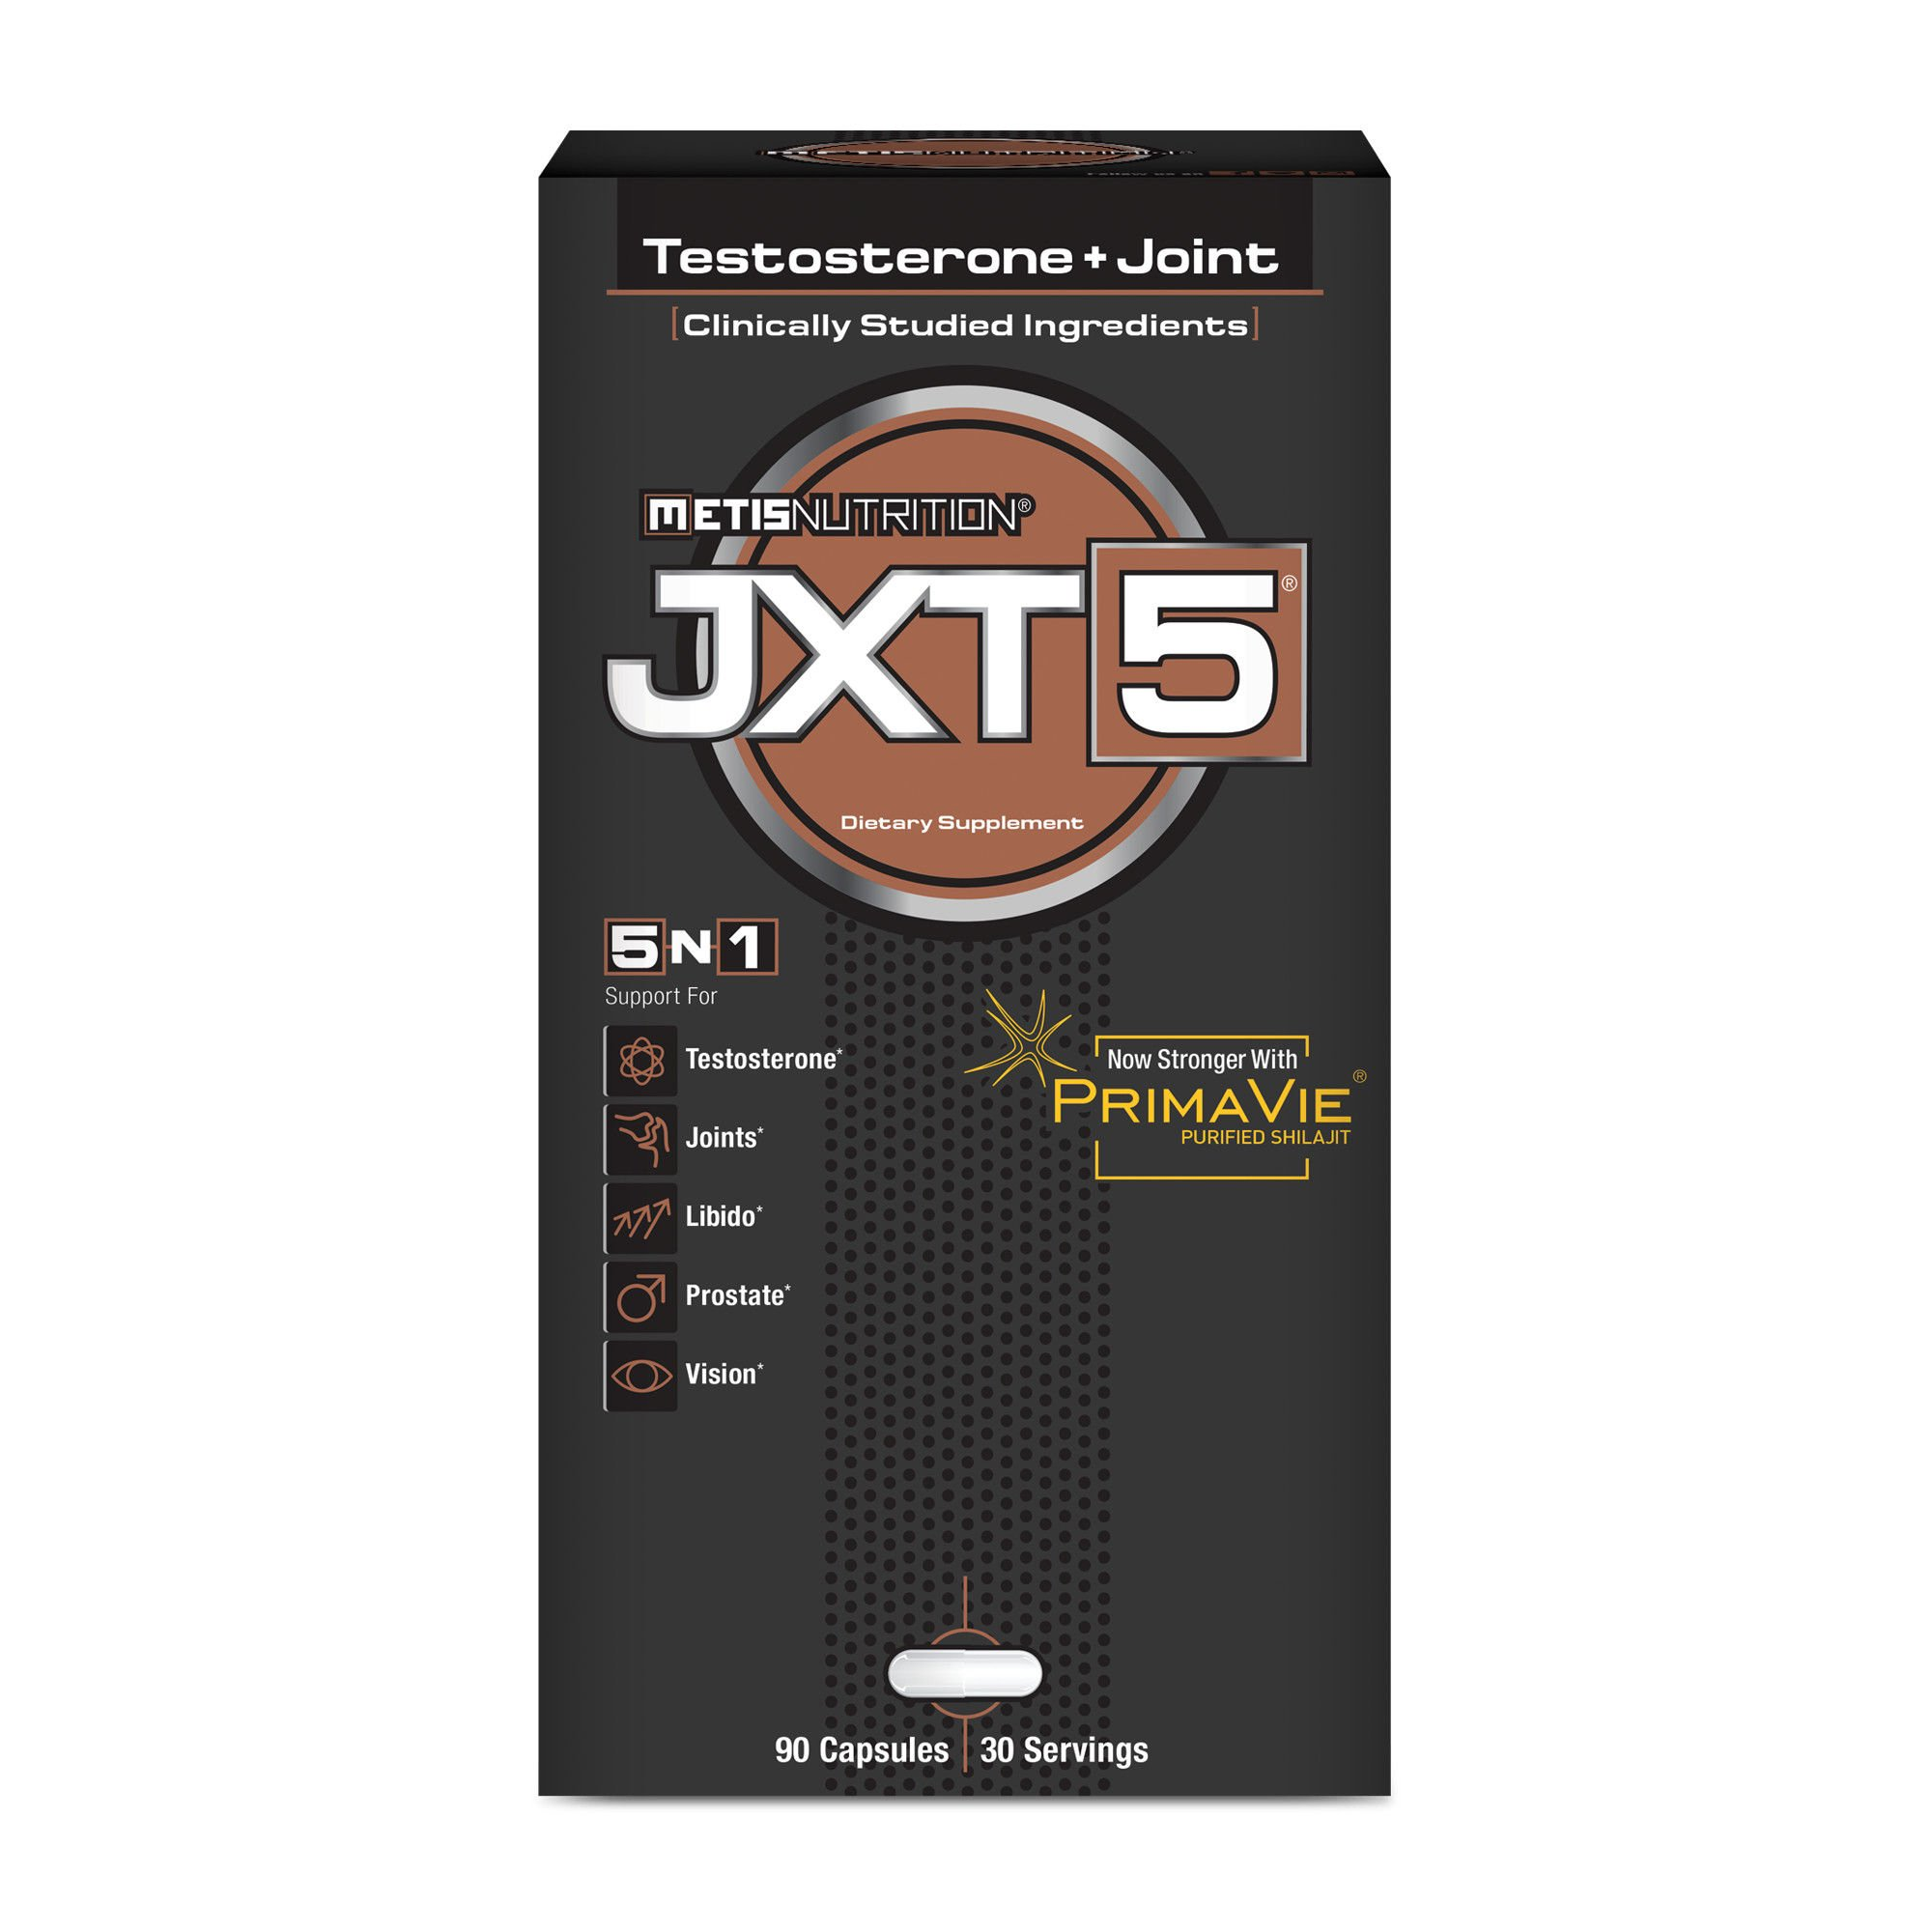 Metis Nutrition JXT5-5-in-1 Men's Health Supplement to Support Testosterone, Joint Health, Libido, Prostate and Vision - Improve Energy, Fitness and Well-Being - 90 Capsules